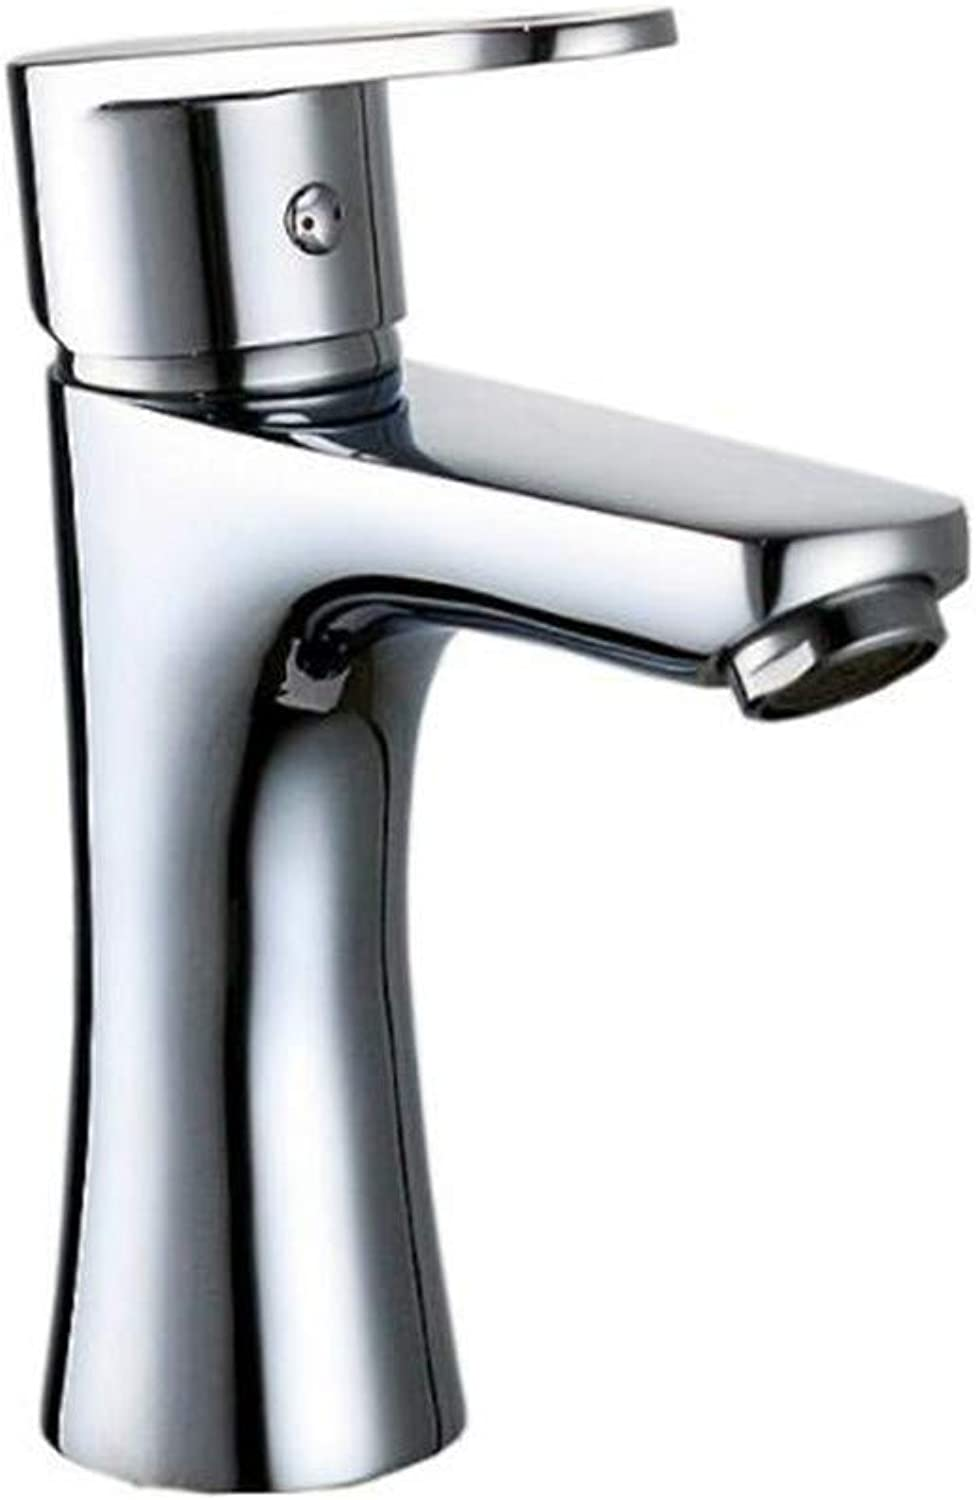 Bathroom Sink Basin Lever Mixer Tap Electroplating Cold and Hot Water Mixing Valve Bathroom Faucet